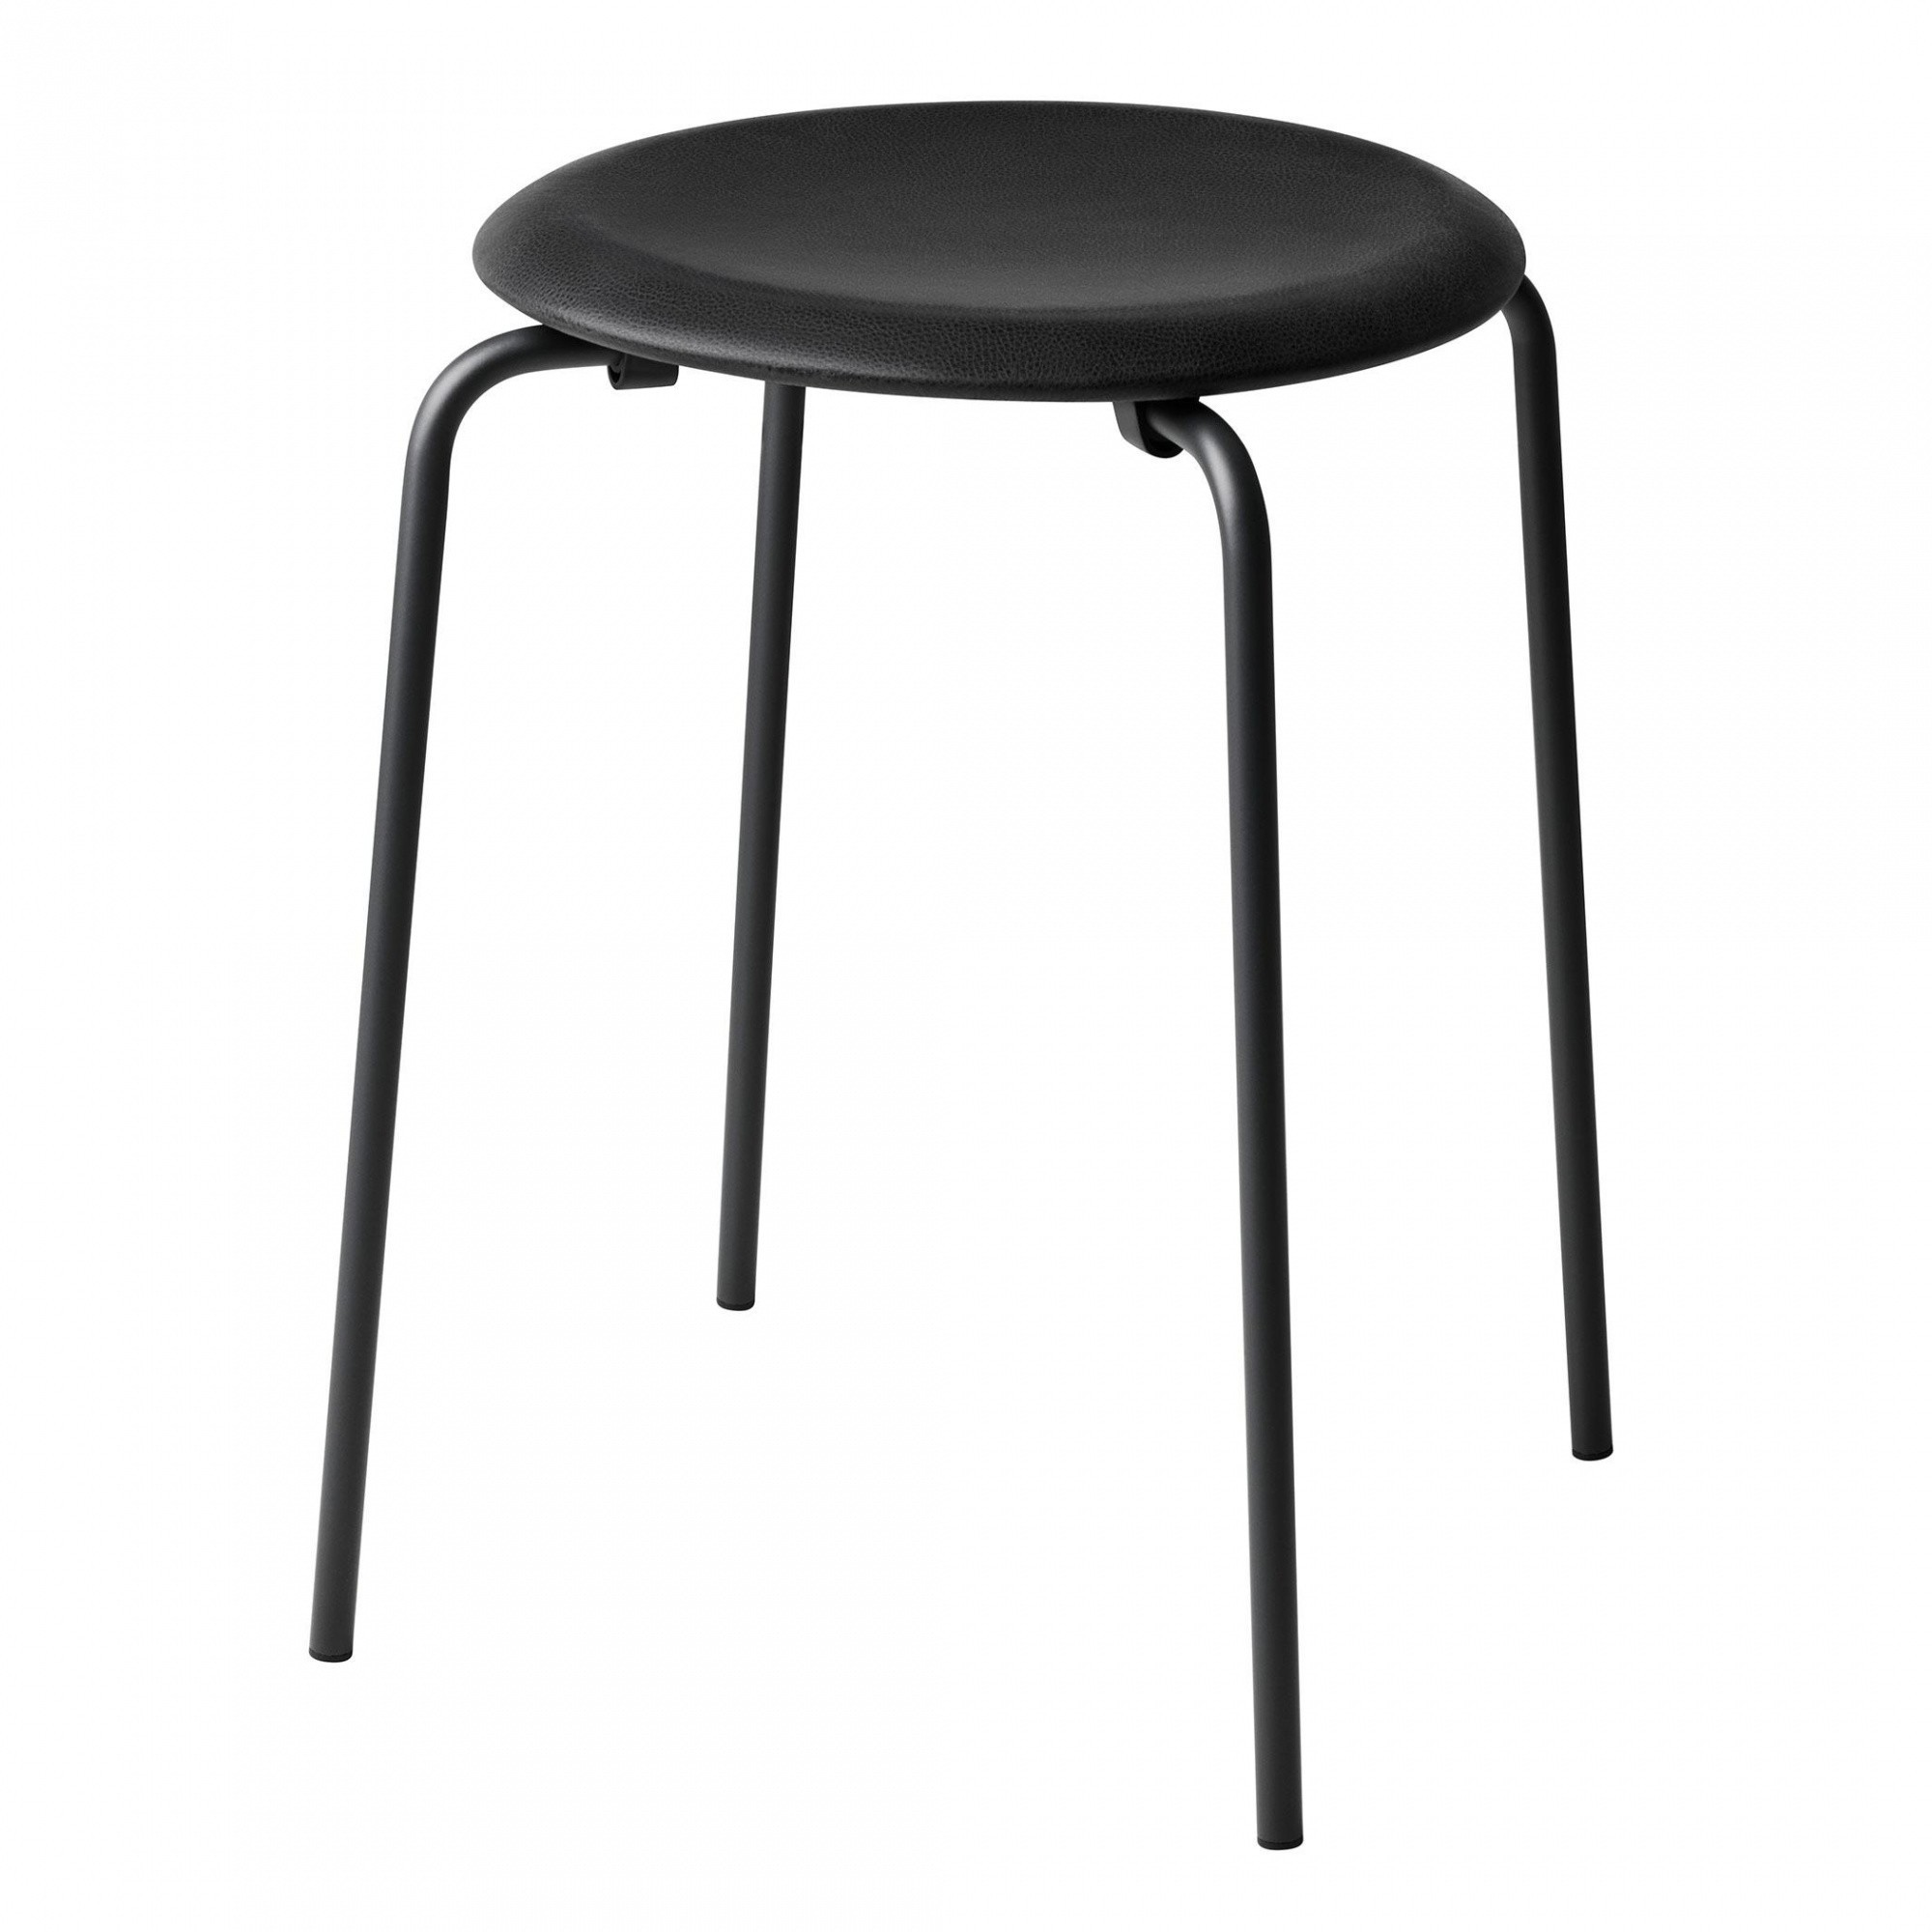 Hocker Leder Dot Hocker Leder Gestell Schwarz